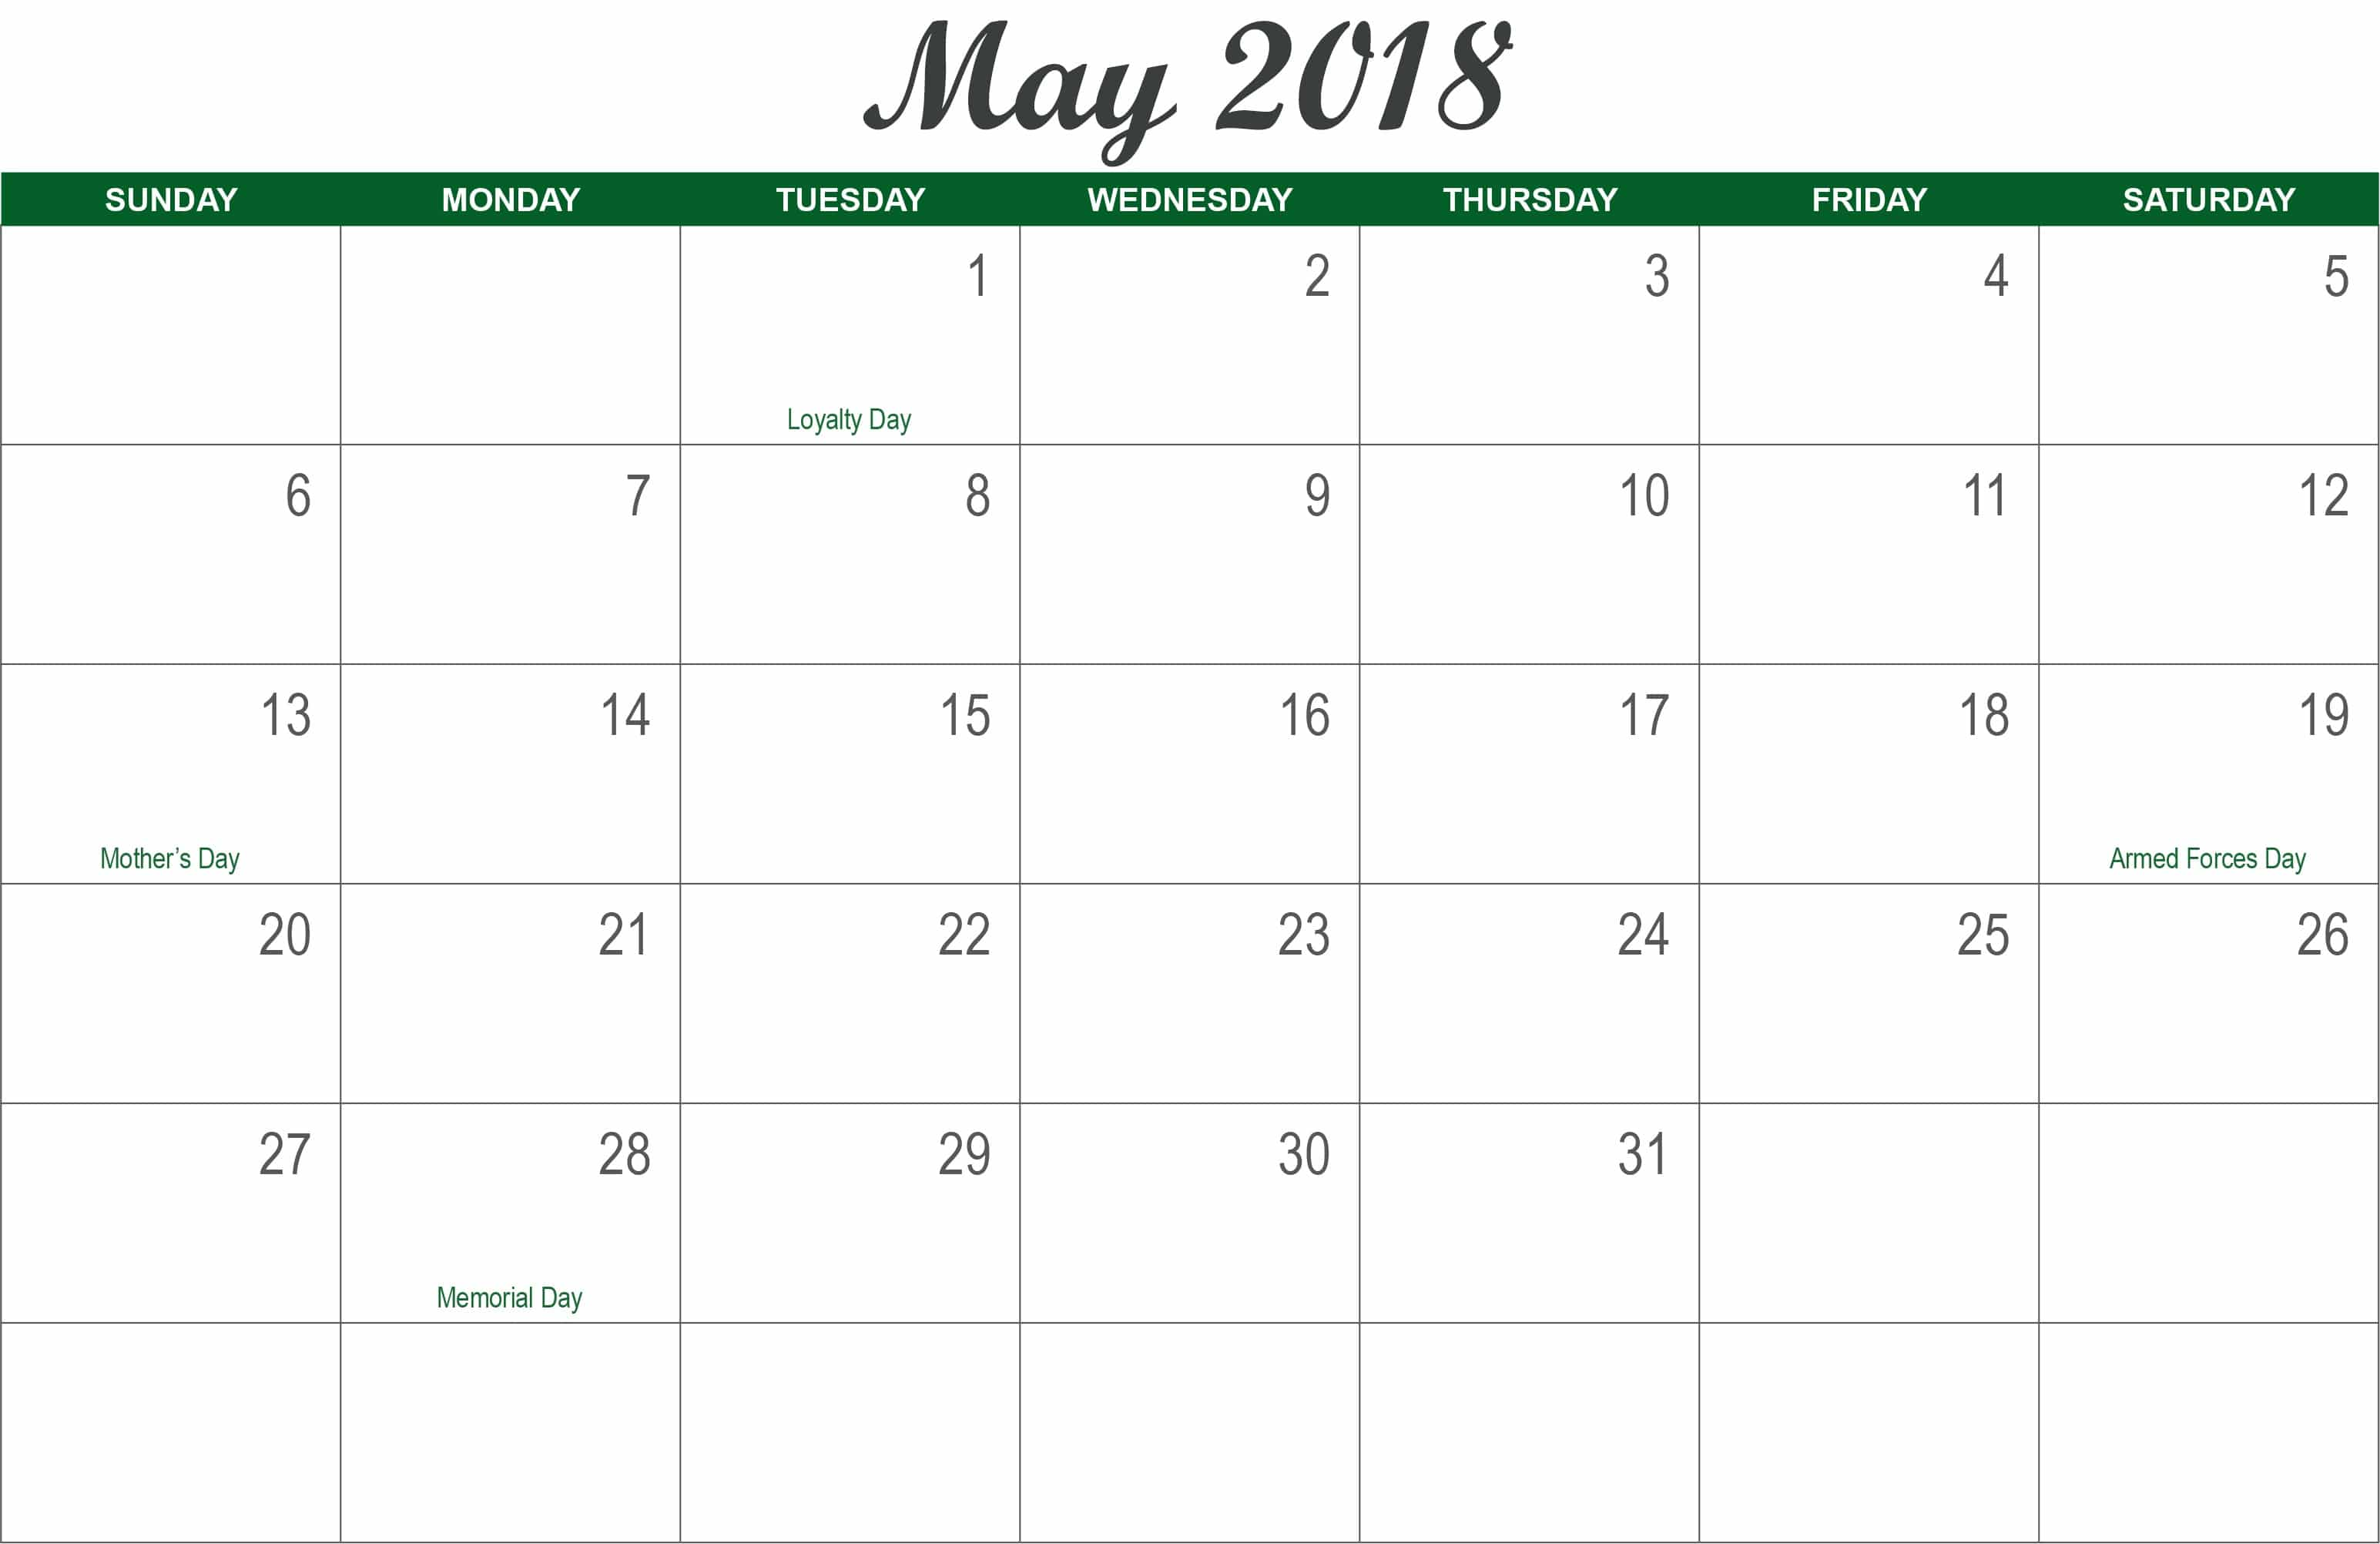 may calendar 2018 template blank and printable calendars free hd images. Black Bedroom Furniture Sets. Home Design Ideas